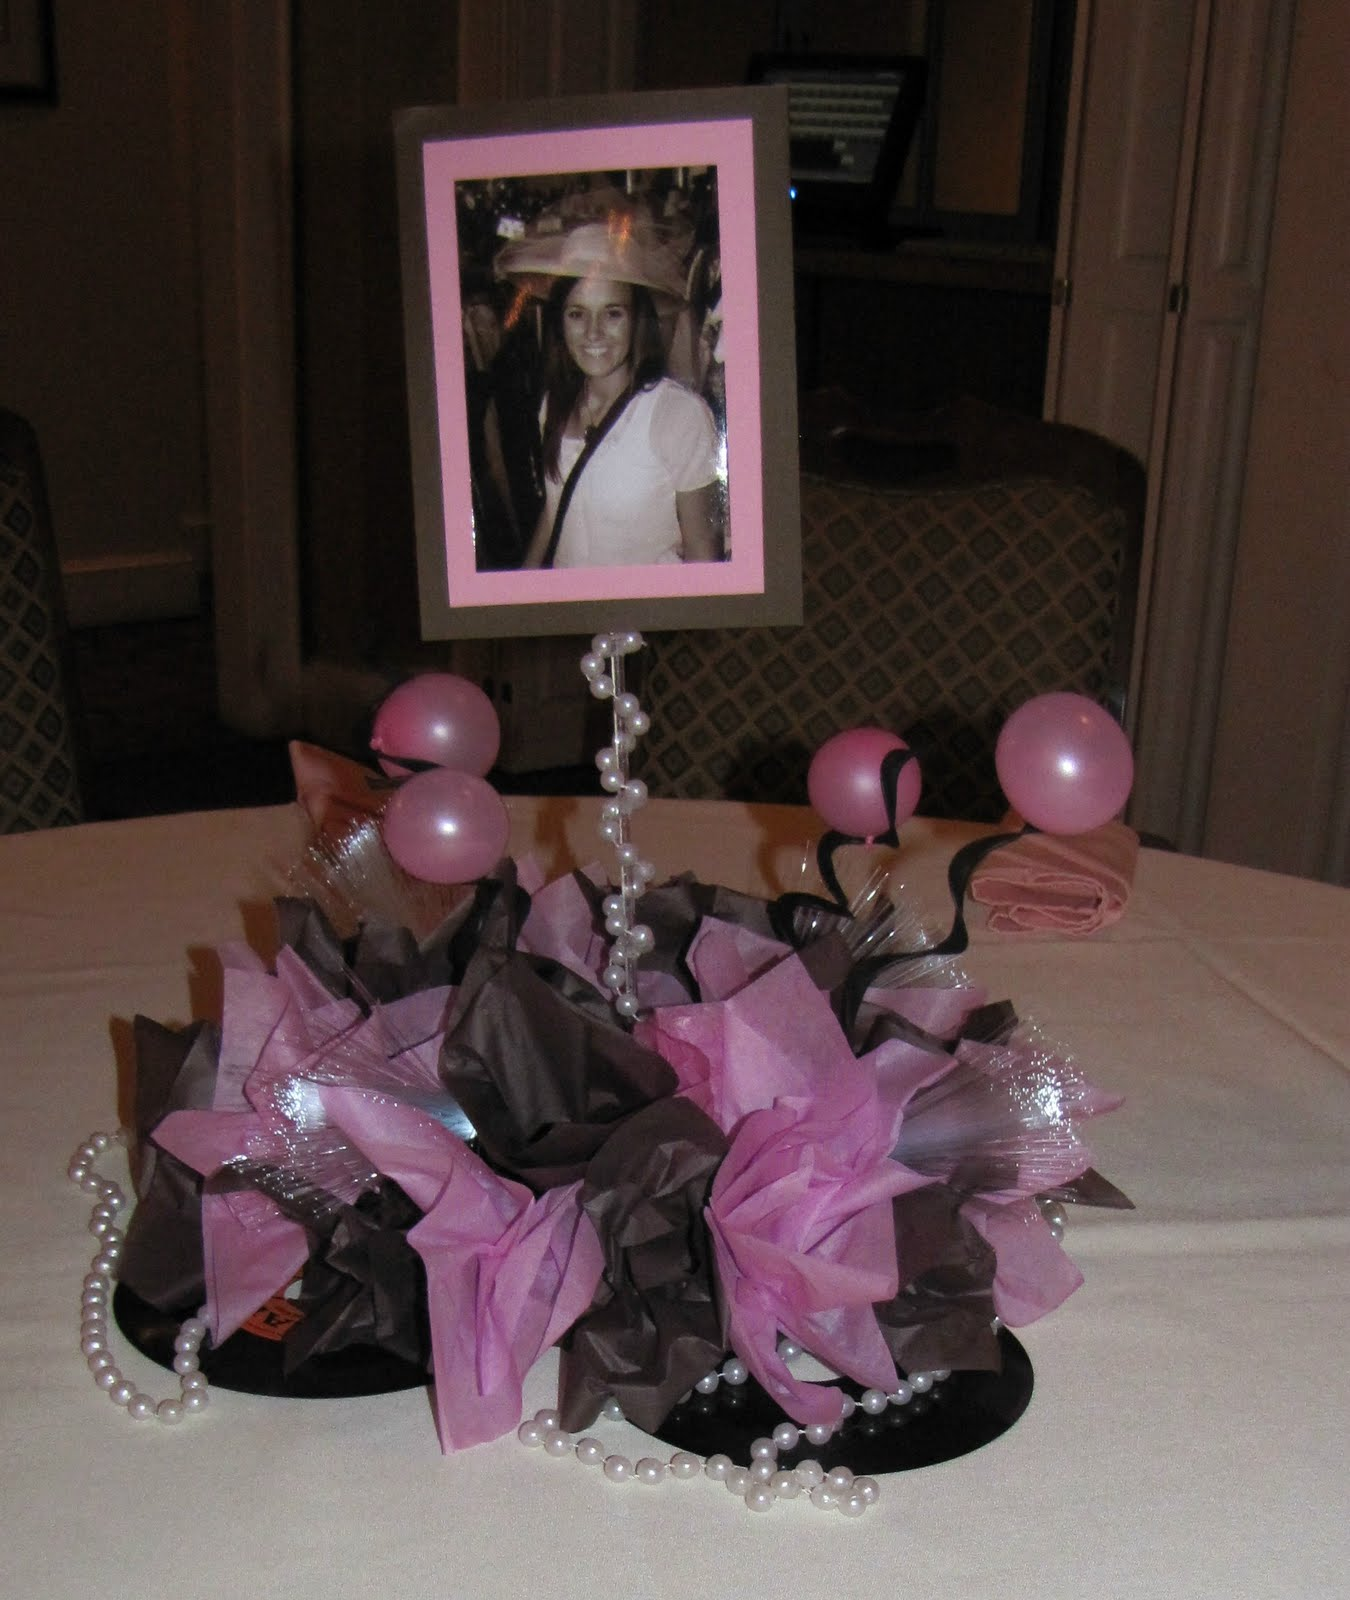 Party people event decorating company sweet 16 at the lakeland with courtney and tara celebrating their birthday together on the photo frames a picture of courtney was on one side and tara on the other jeuxipadfo Gallery